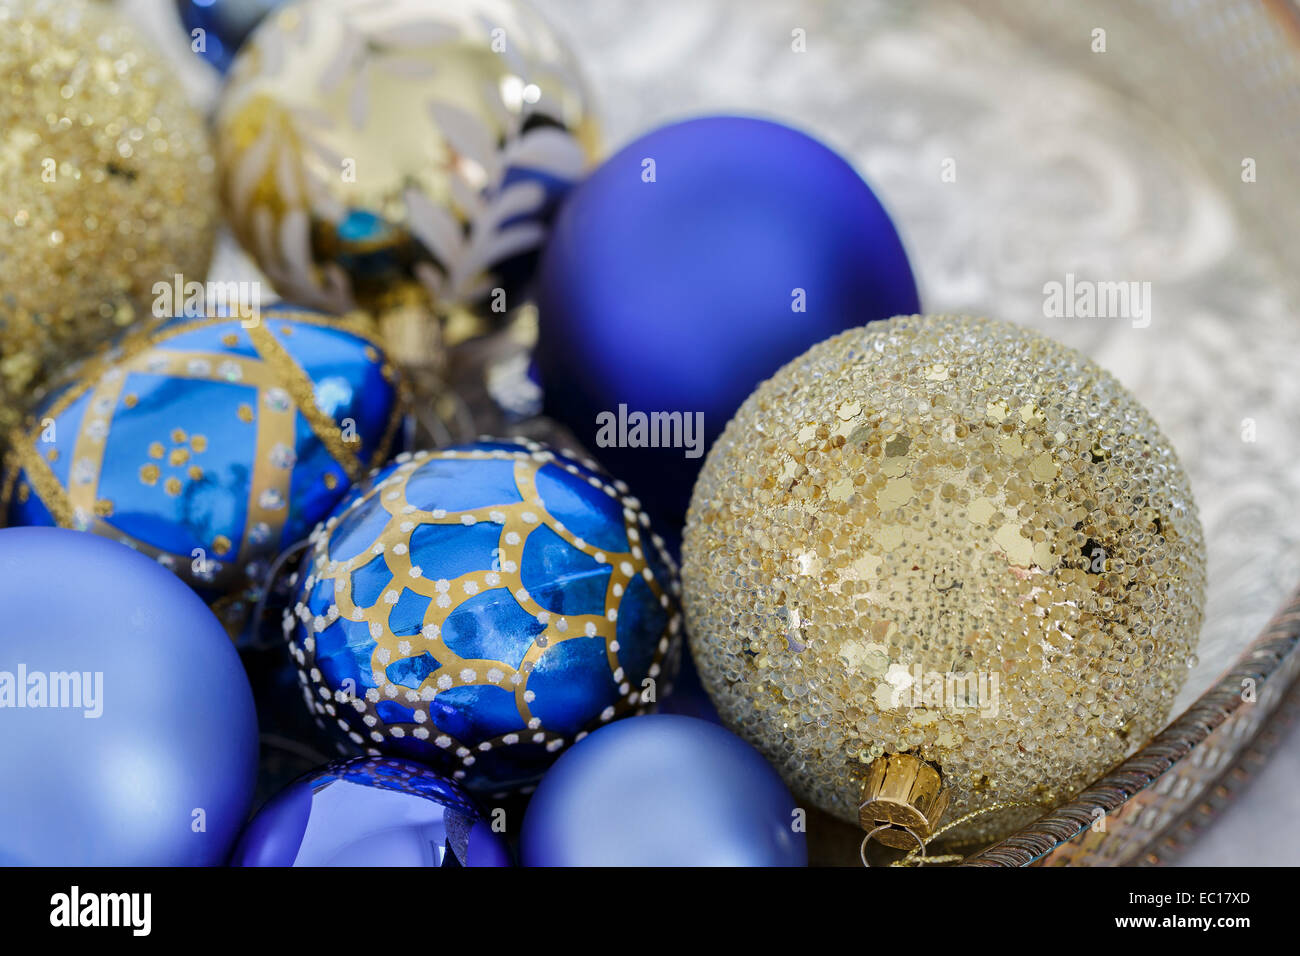 blue and gold christmas decorations on a silver tray stock image - Gold Christmas Decorations